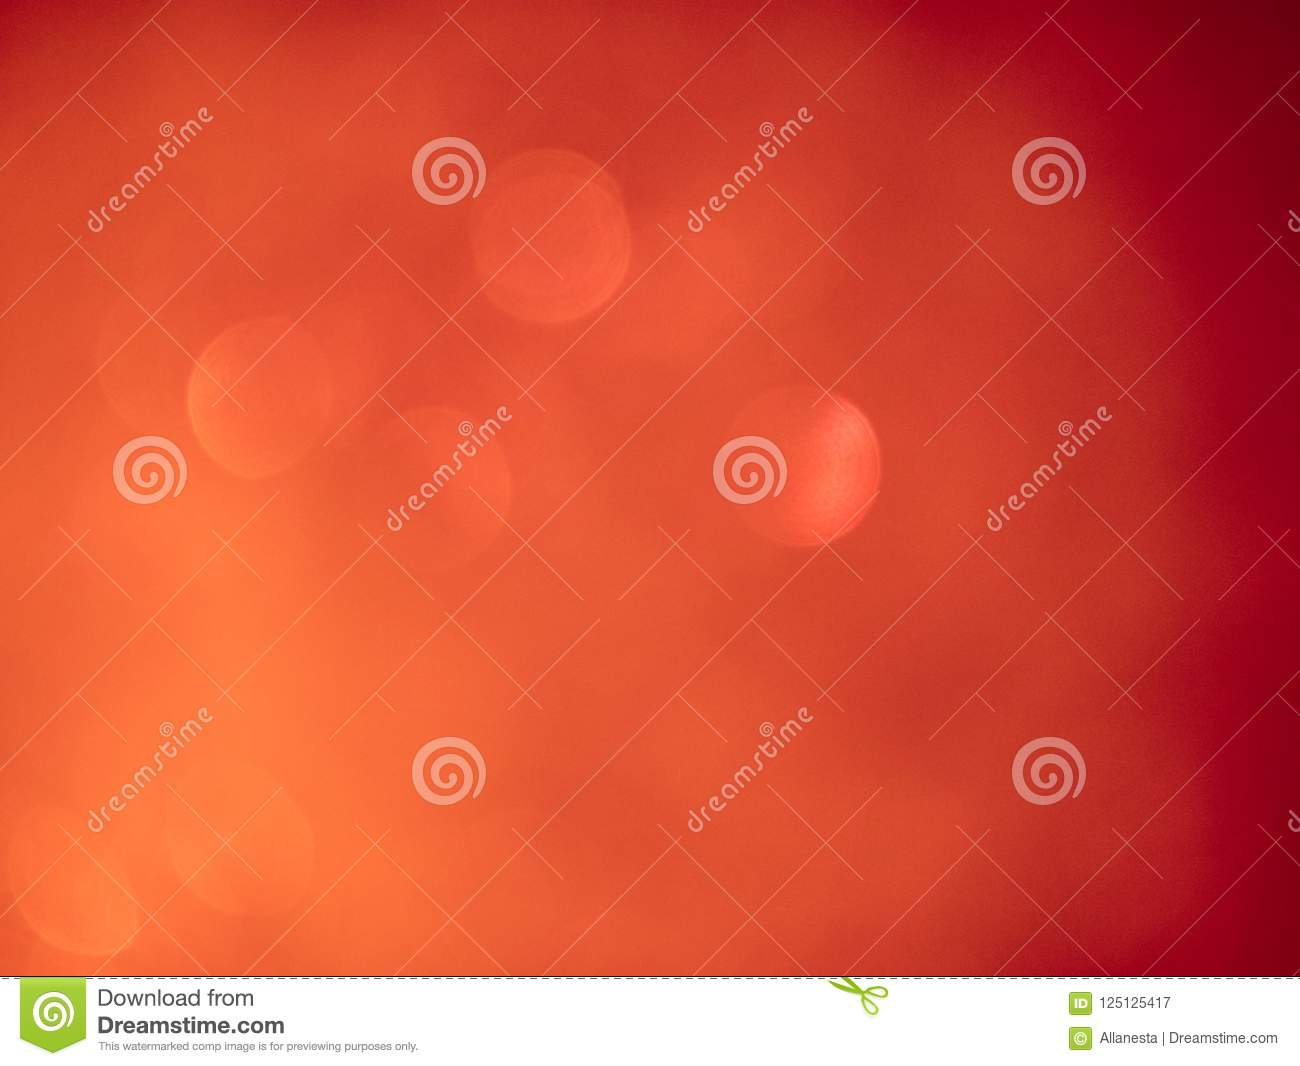 Blurred background lights. Abstract defocused gold, white, red and yellow glitters texture. Shining glowing effects